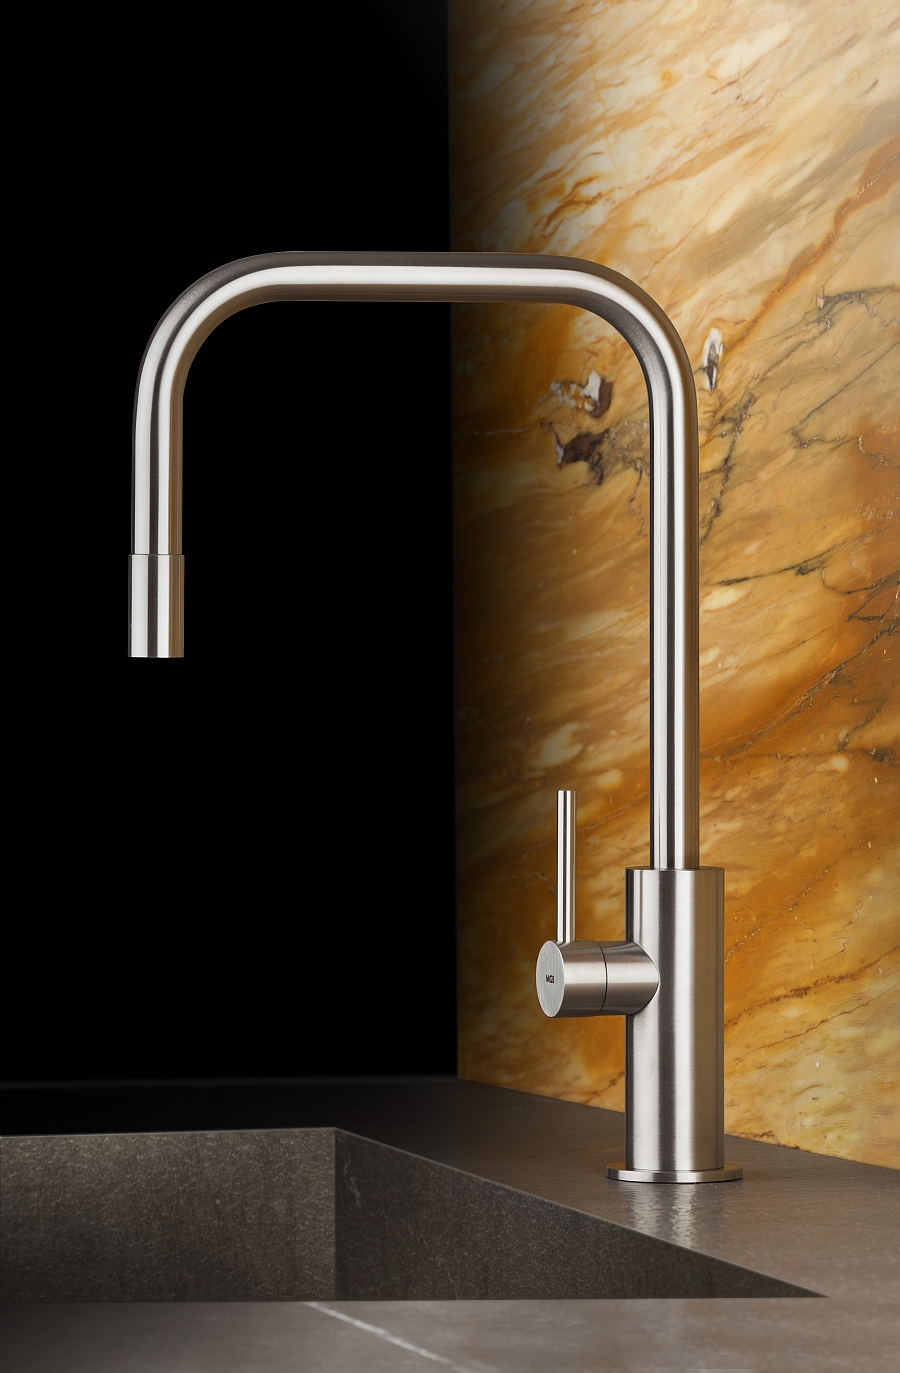 Gorgeous stainless steel faucet with sleek and curvy design